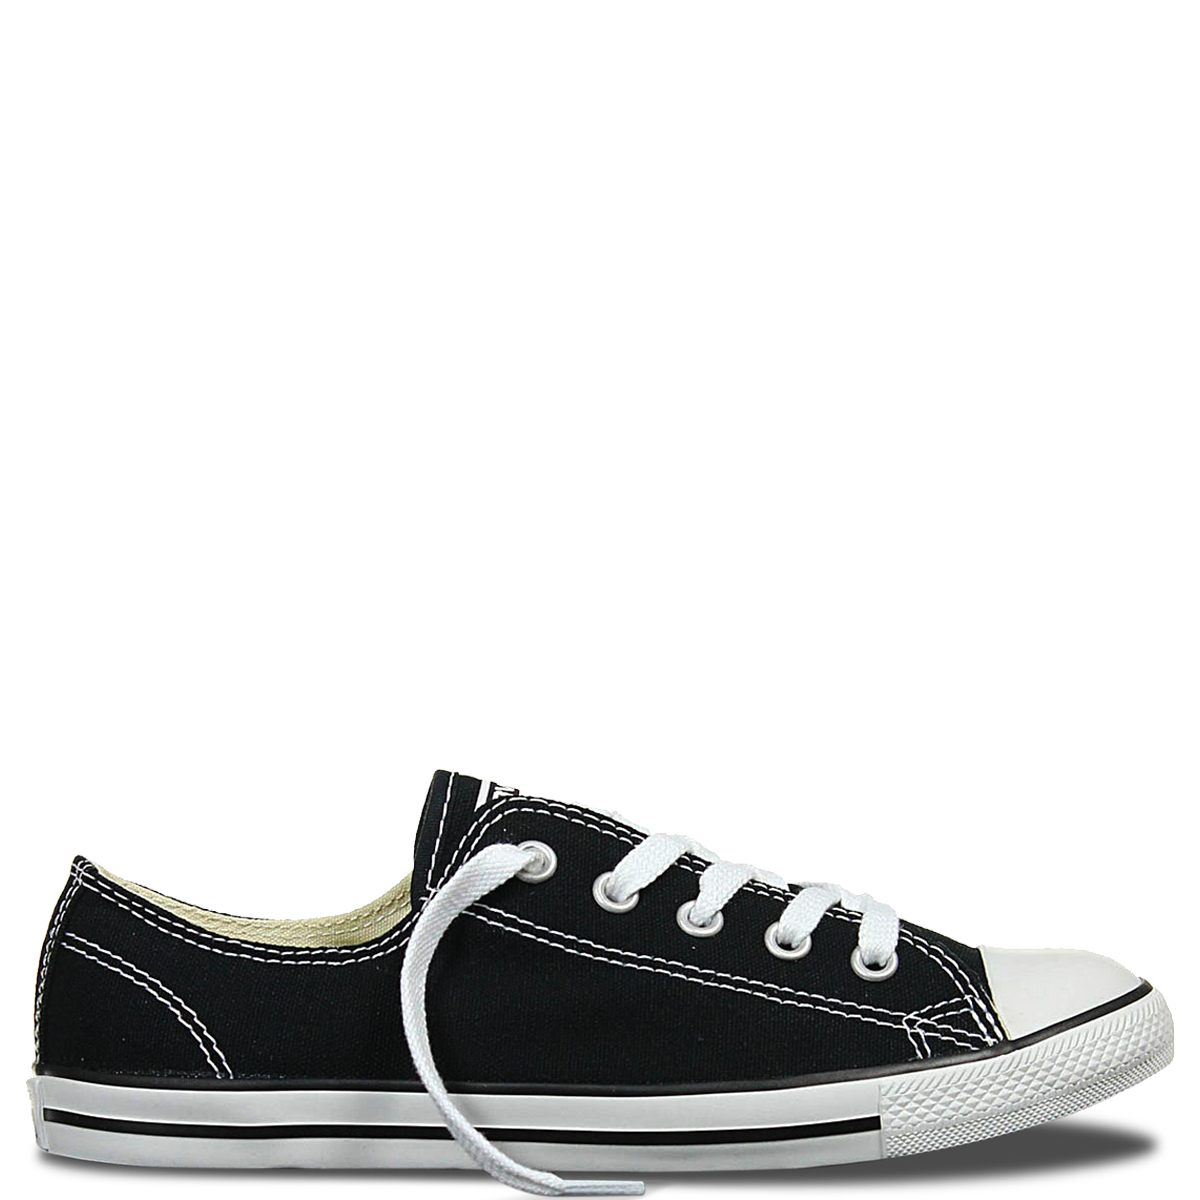 cheap converse shoes australia